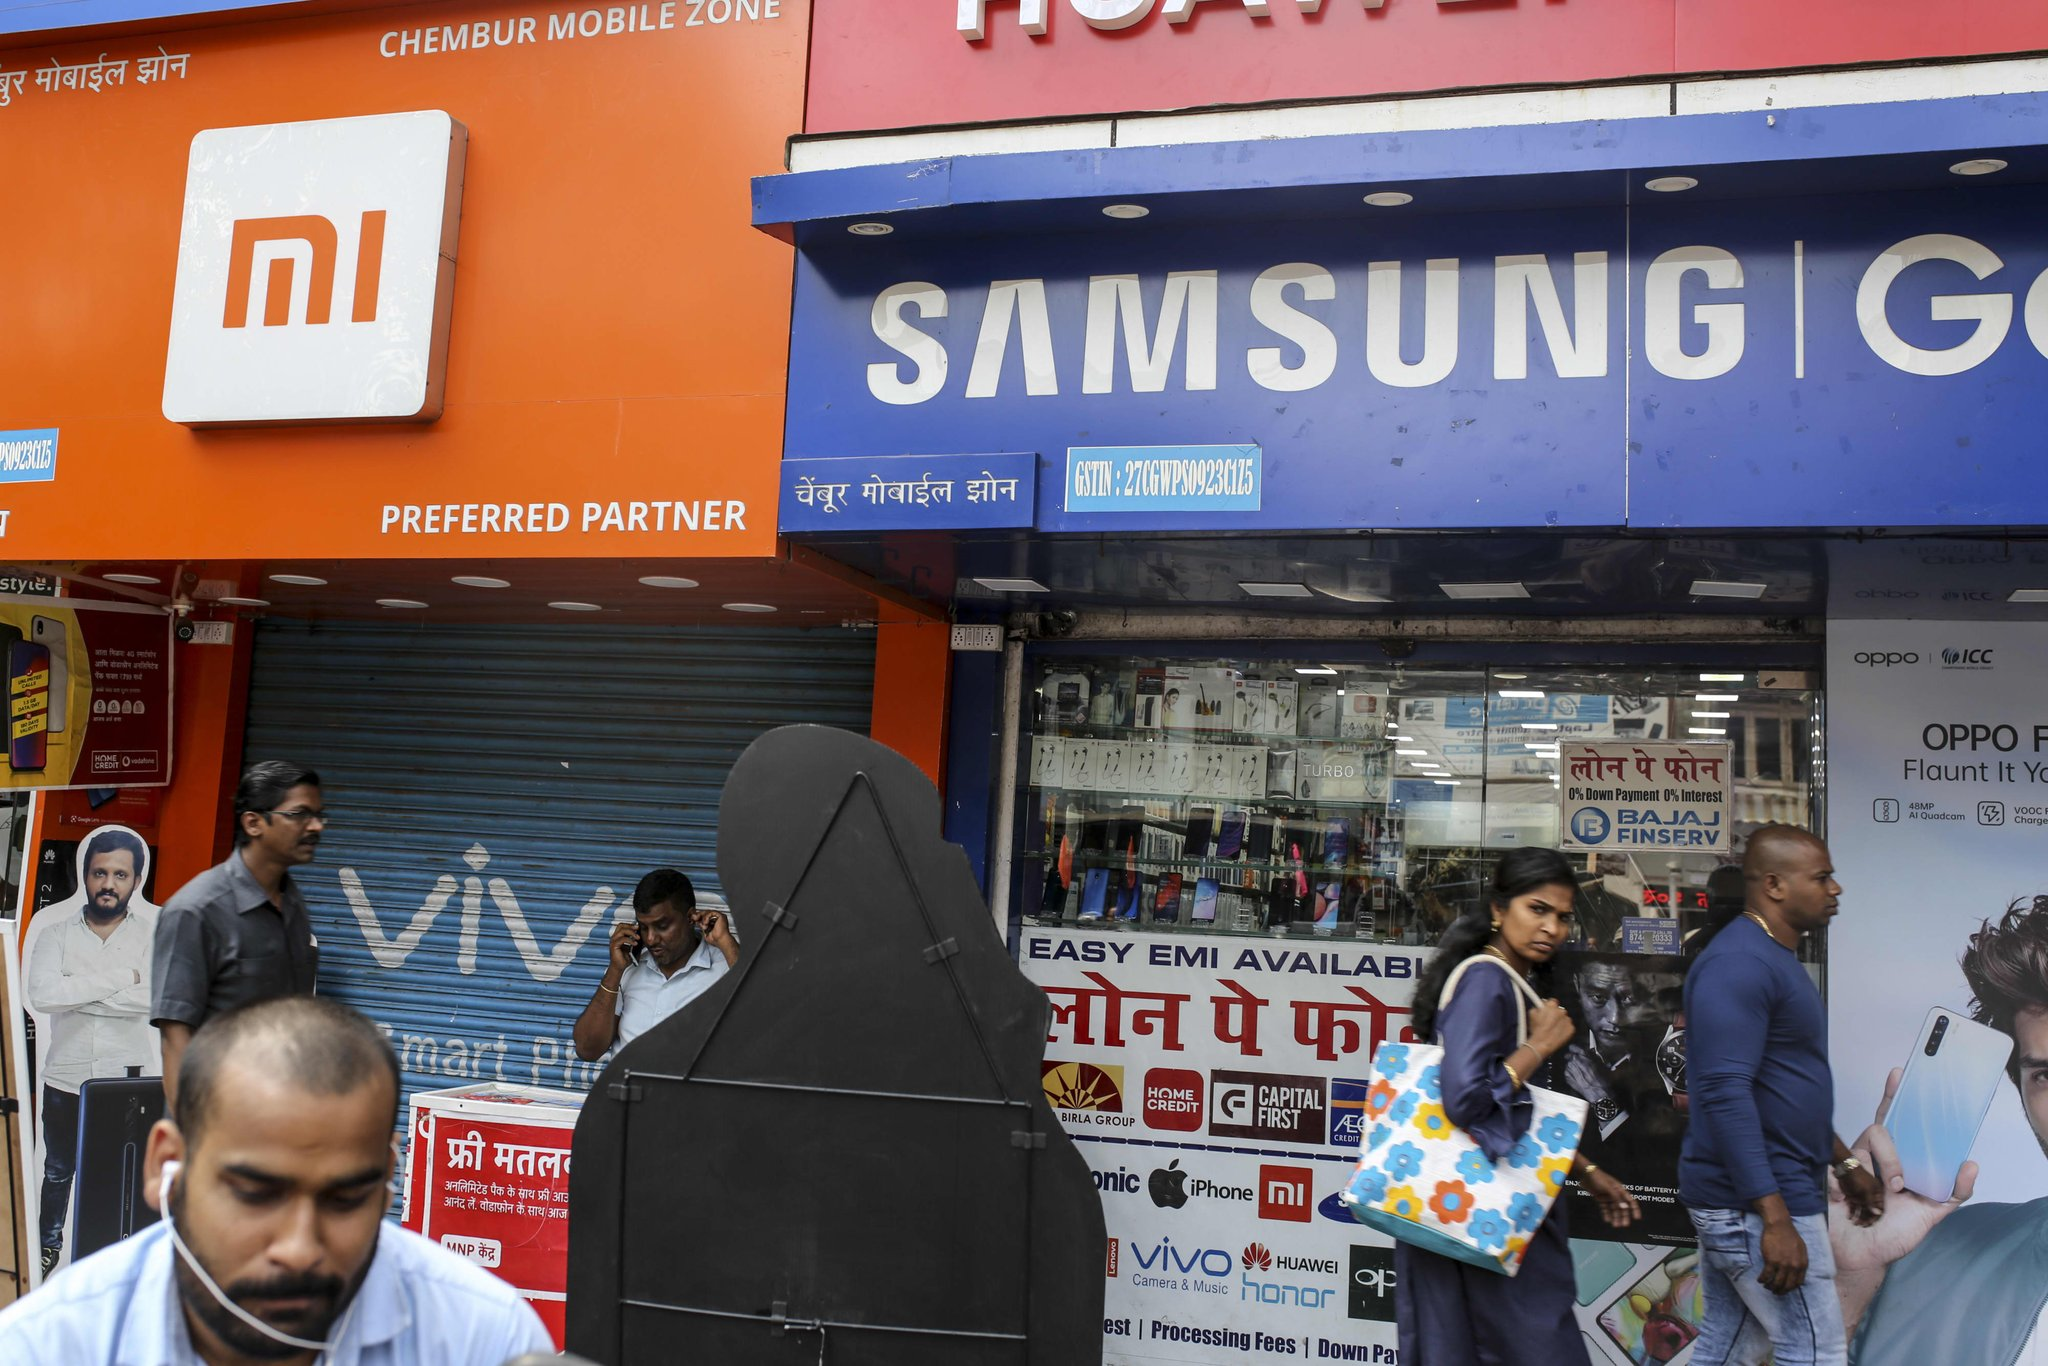 Smartphone shipments in India fell 13% on-quarter as Chinese firms maintain their stronghold Photo